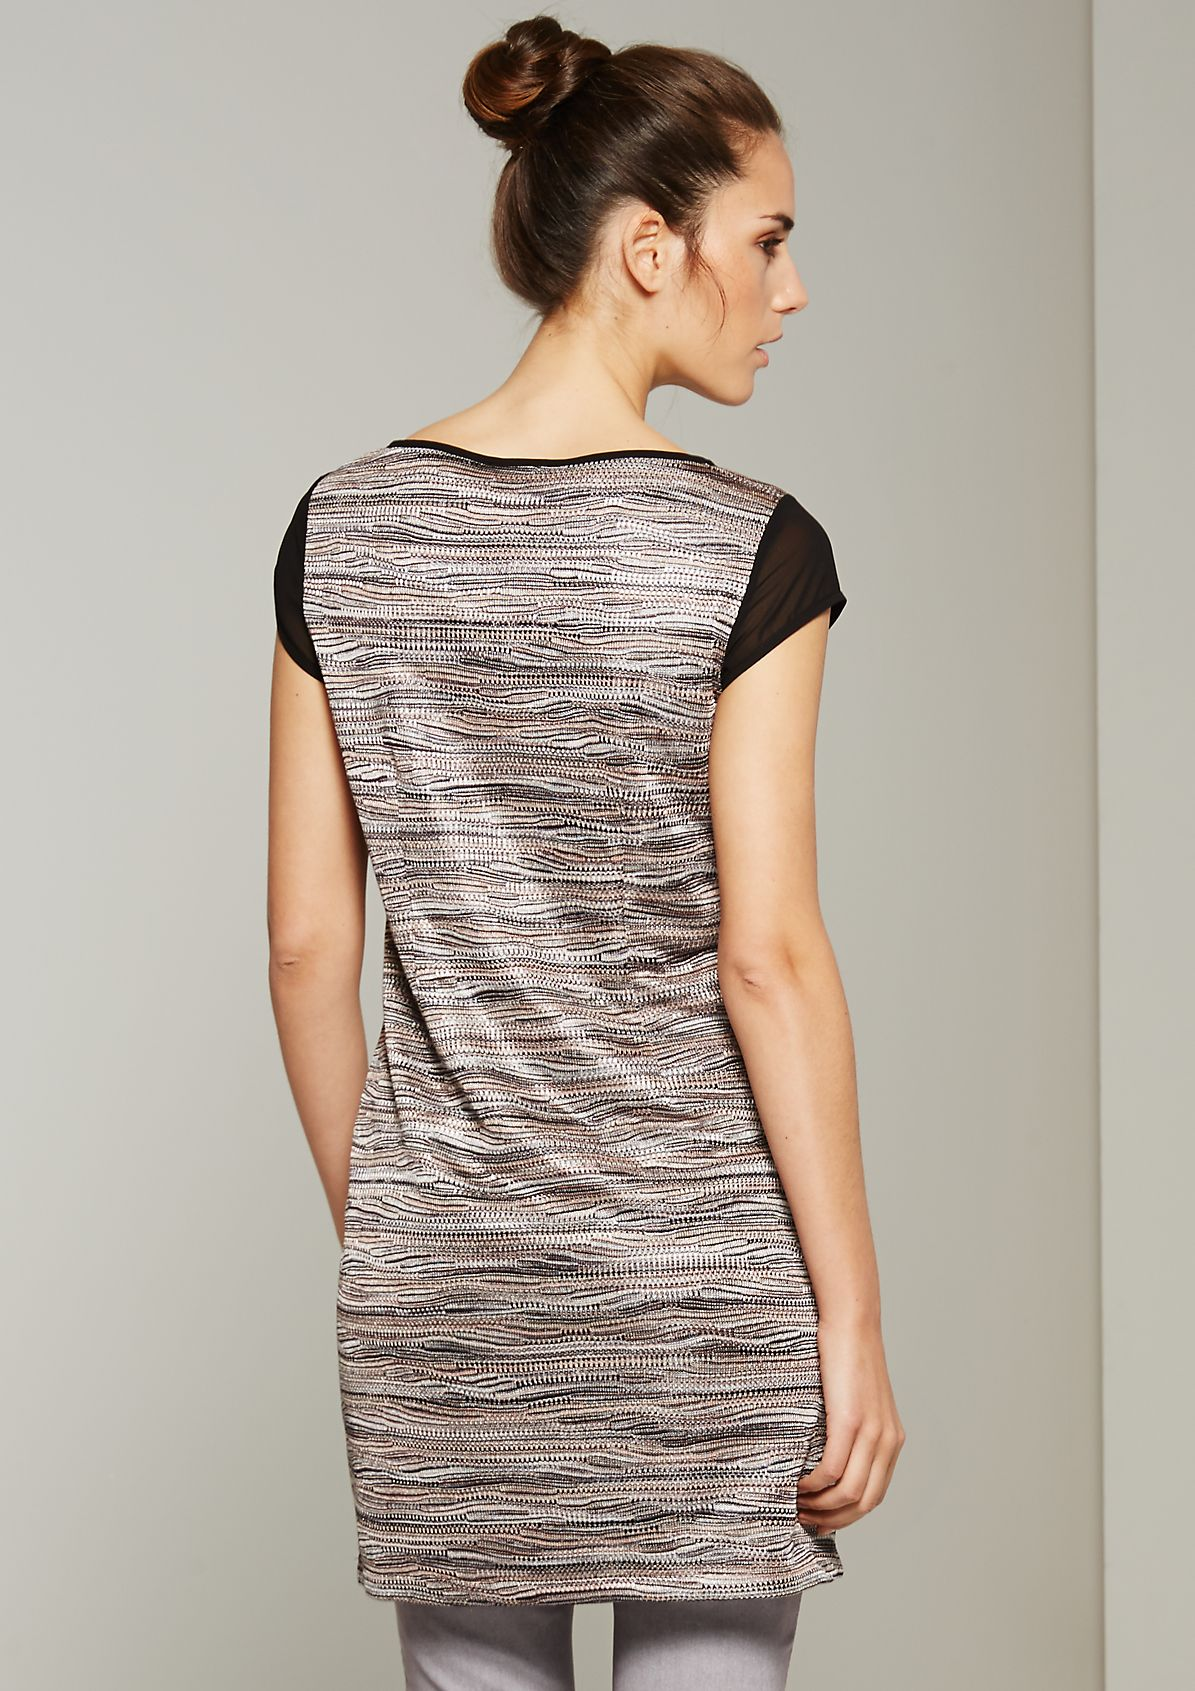 Extravagant longline top with a decorative multi-coloured pattern from s.Oliver